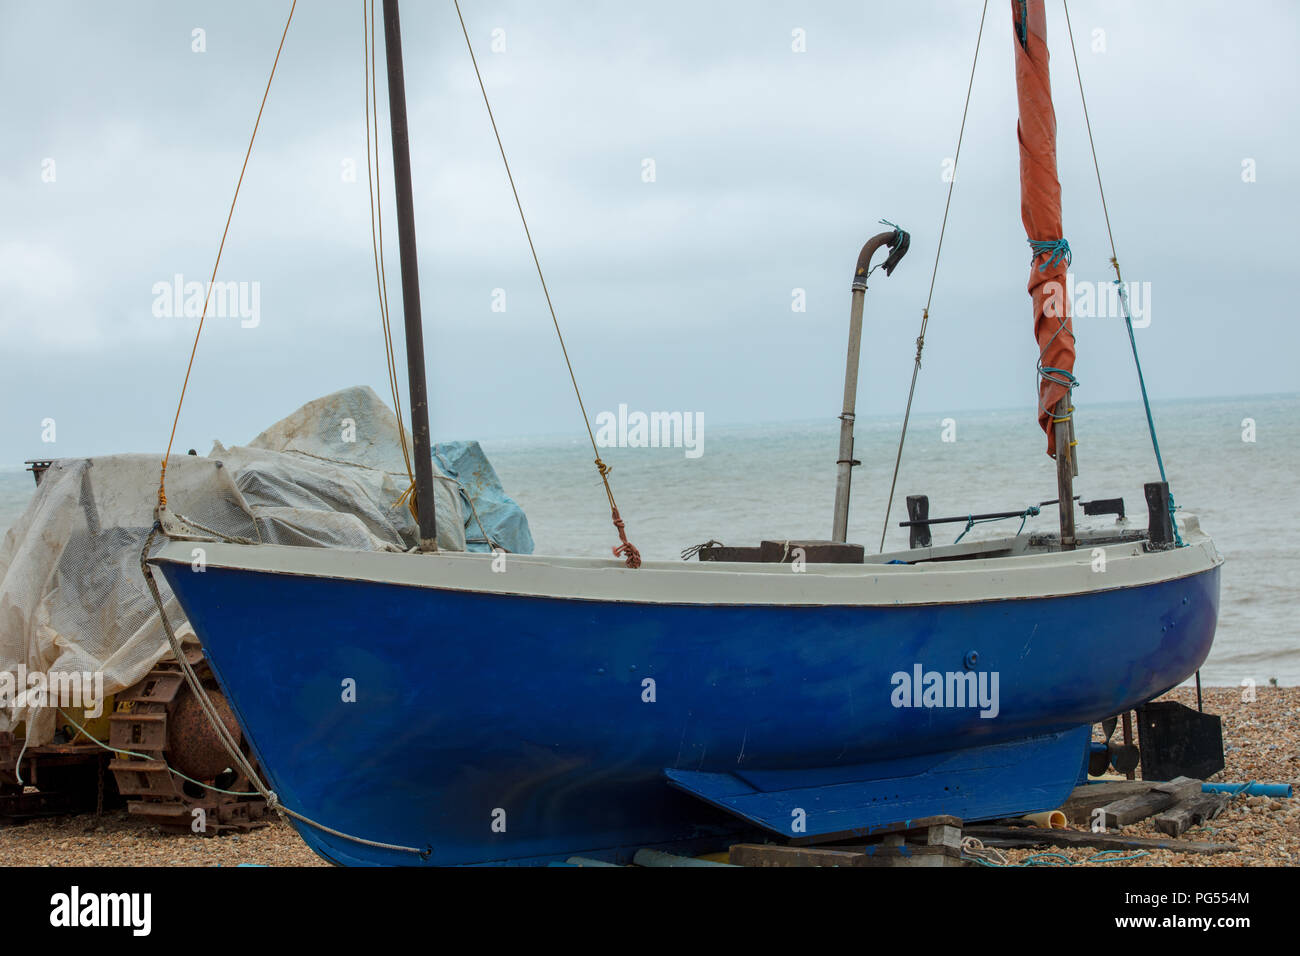 Fiishing Boat on Hastings beach,waiting to be launched by the local fishermen for their sustainable livelyhood, and a tourist attraction. - Stock Image